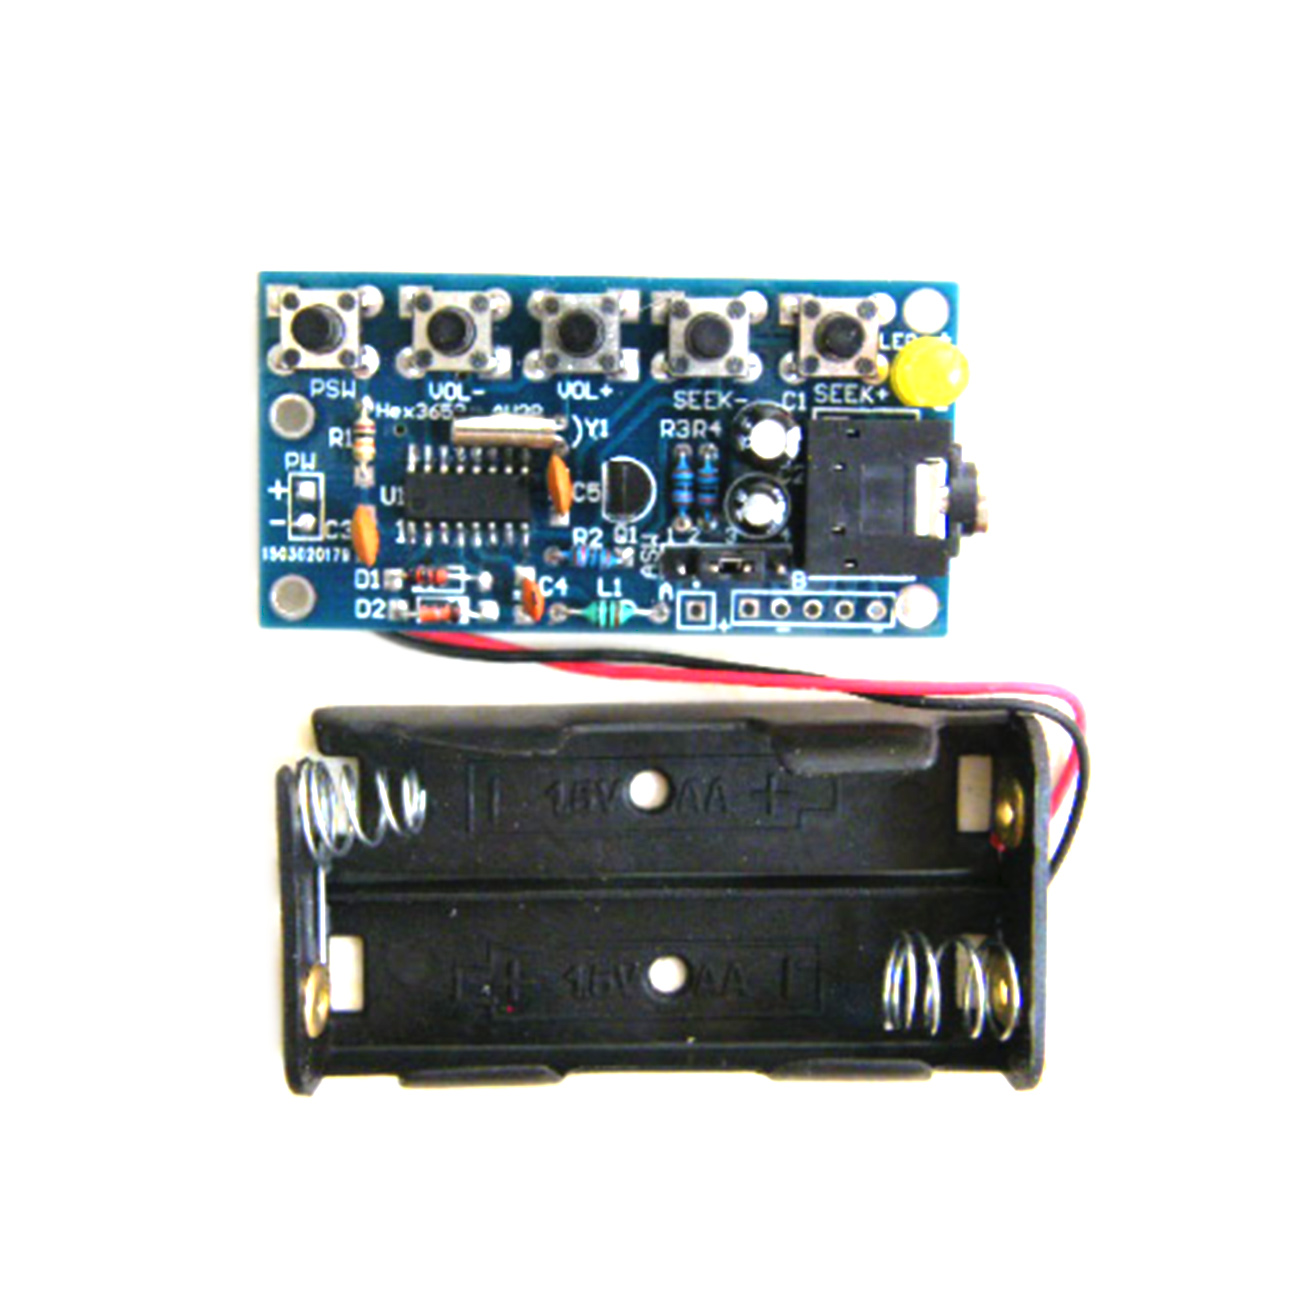 76-108MHz Stereo FM Radio Receiver Module PCB Electronic Soldering Practice Kits for DIY